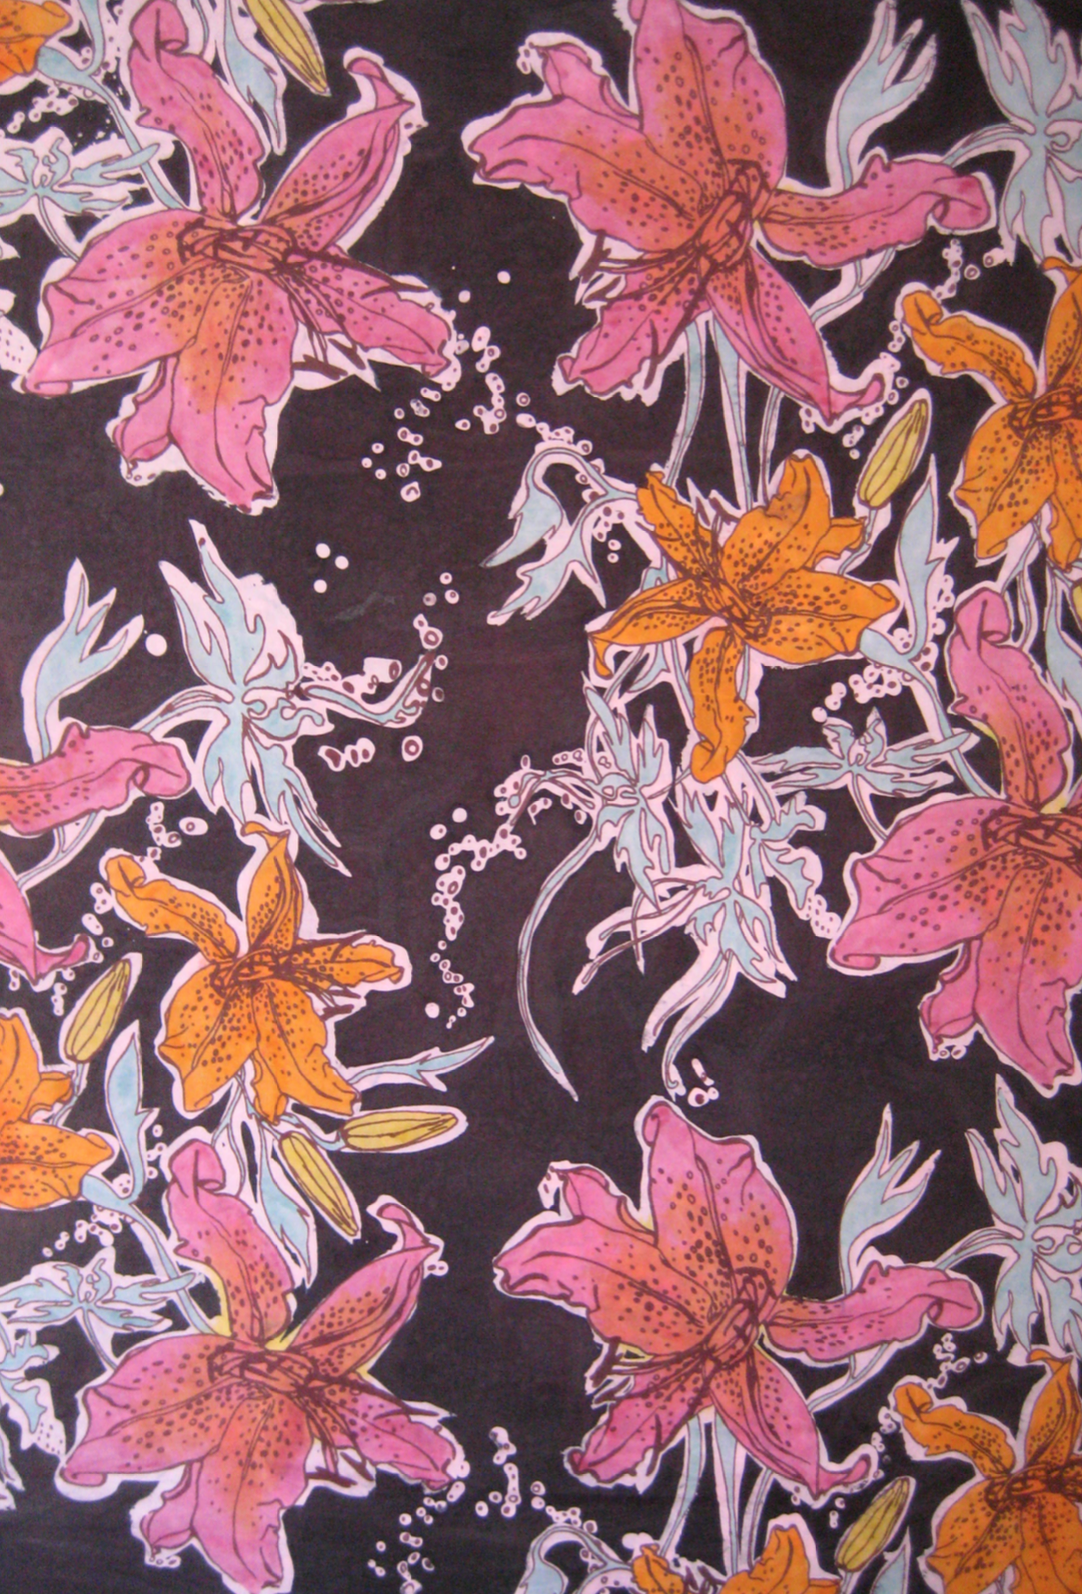 'Pacific Pallate', Batik, and multiple dye processed silk, 2006